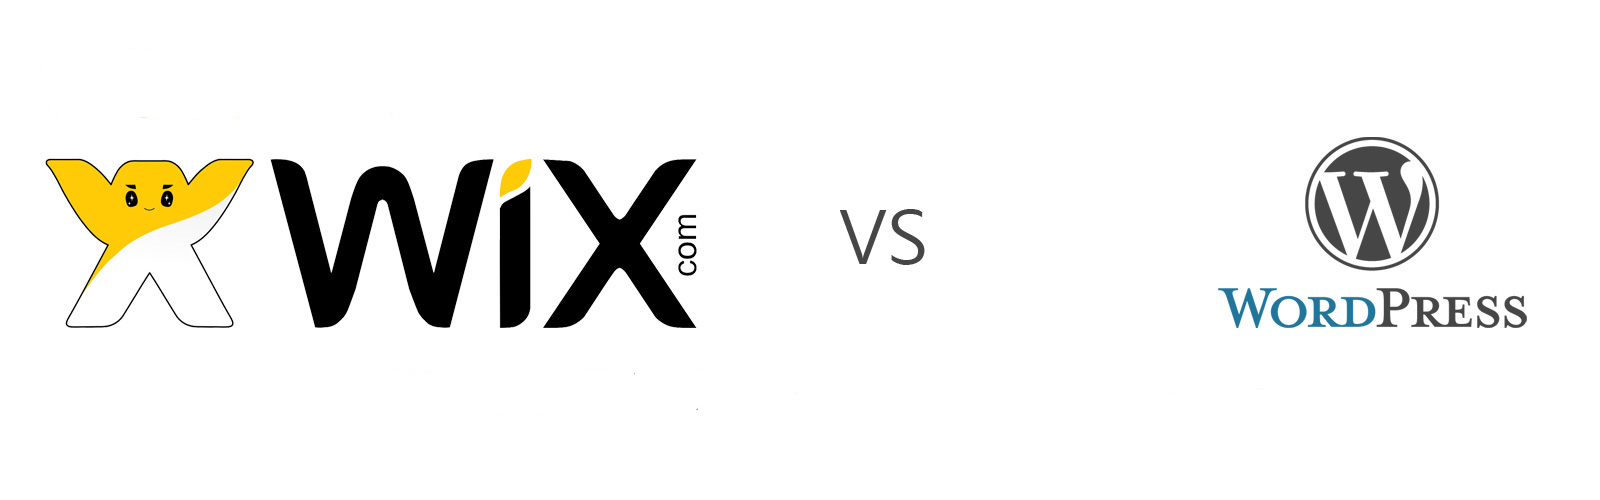 WIx vs Wordpress in every aspect.